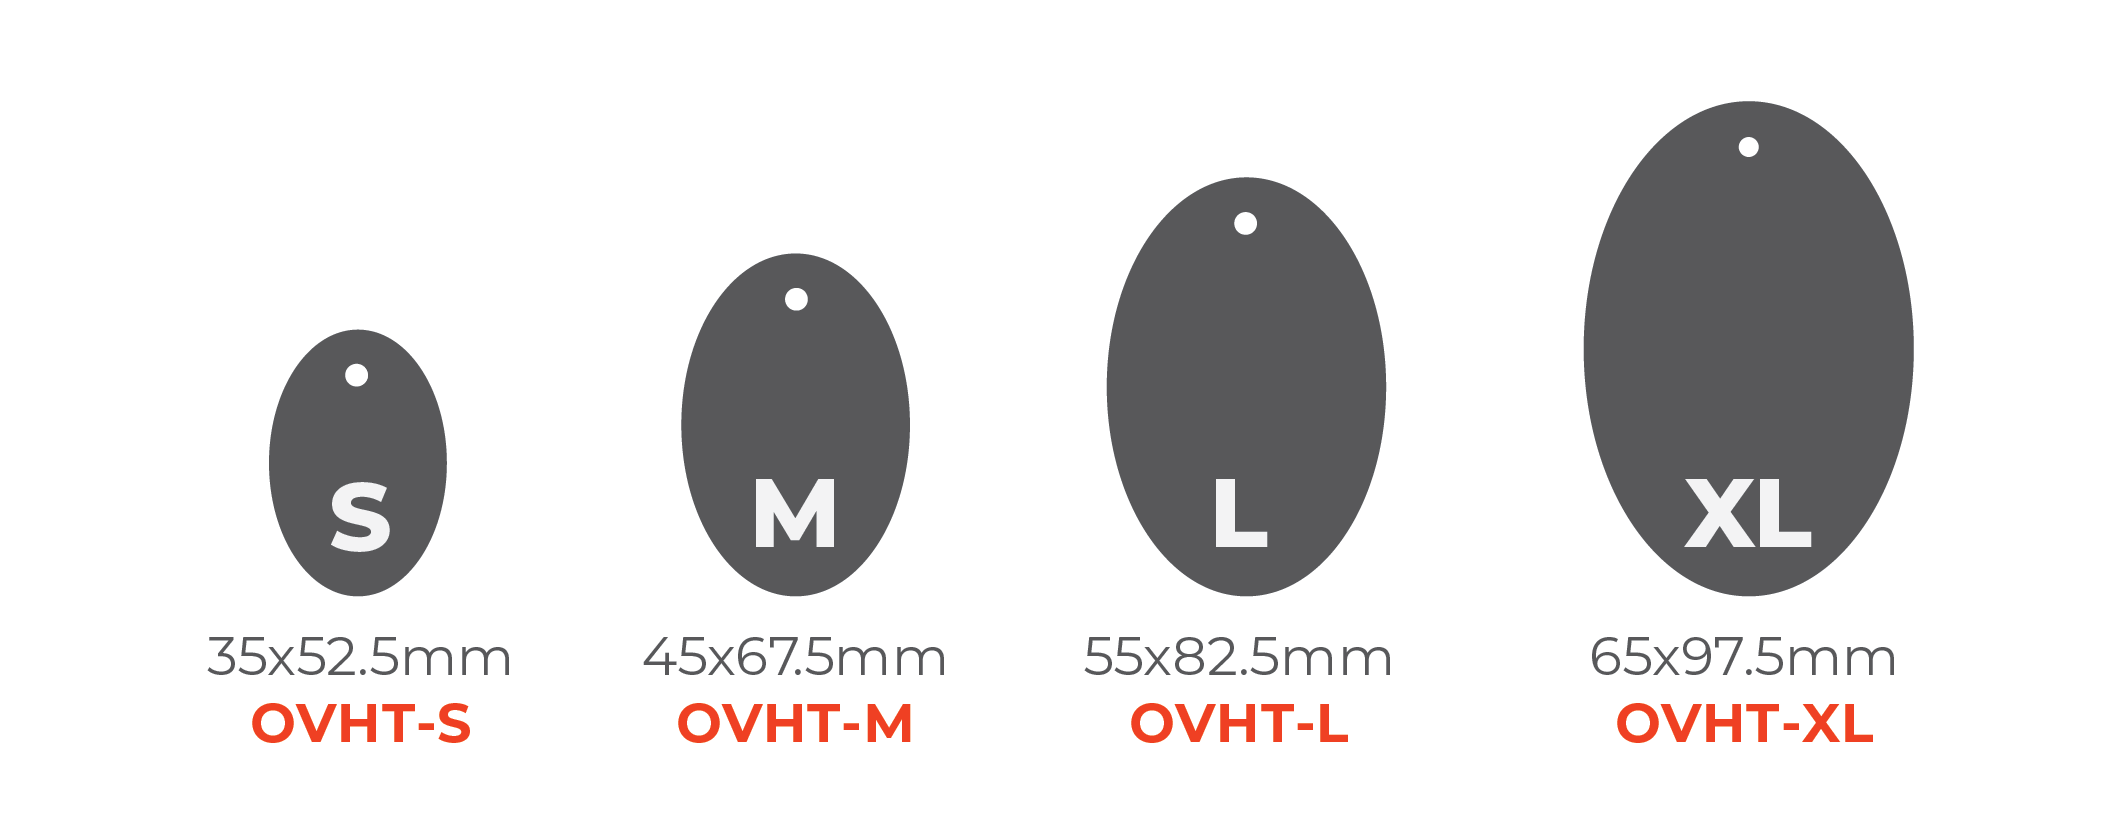 Double Pasted Hang Tags - Oval Tags 0x0mm 01 Image